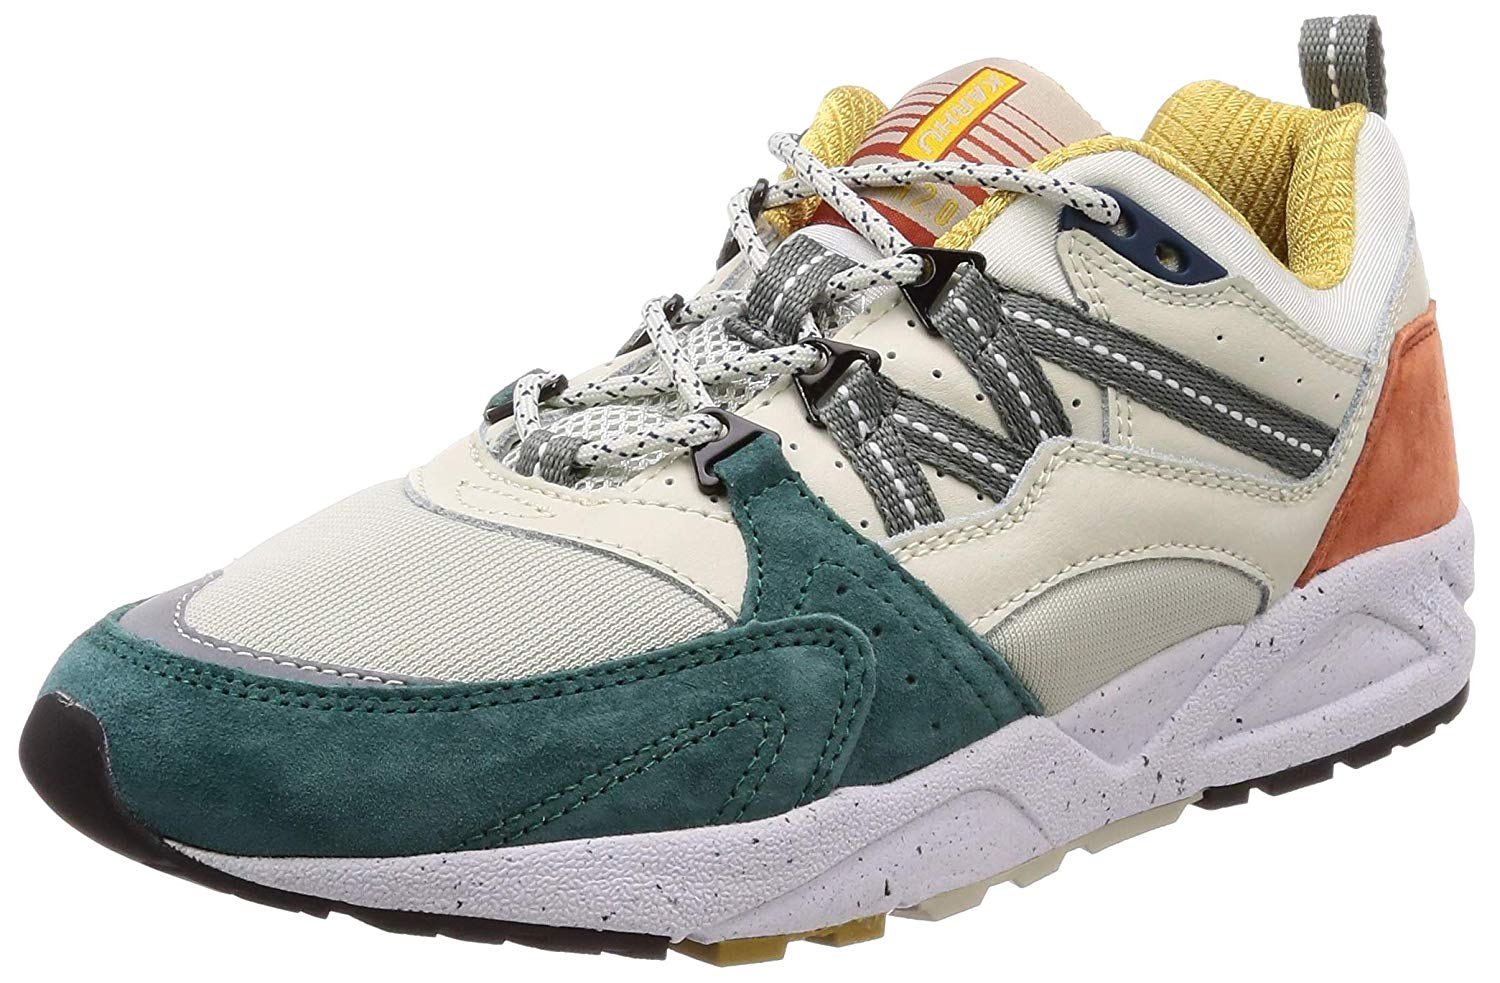 Karhu Men's Fusion 2.0 Beige, Teal and Rust Leather and Nylon Sneaker